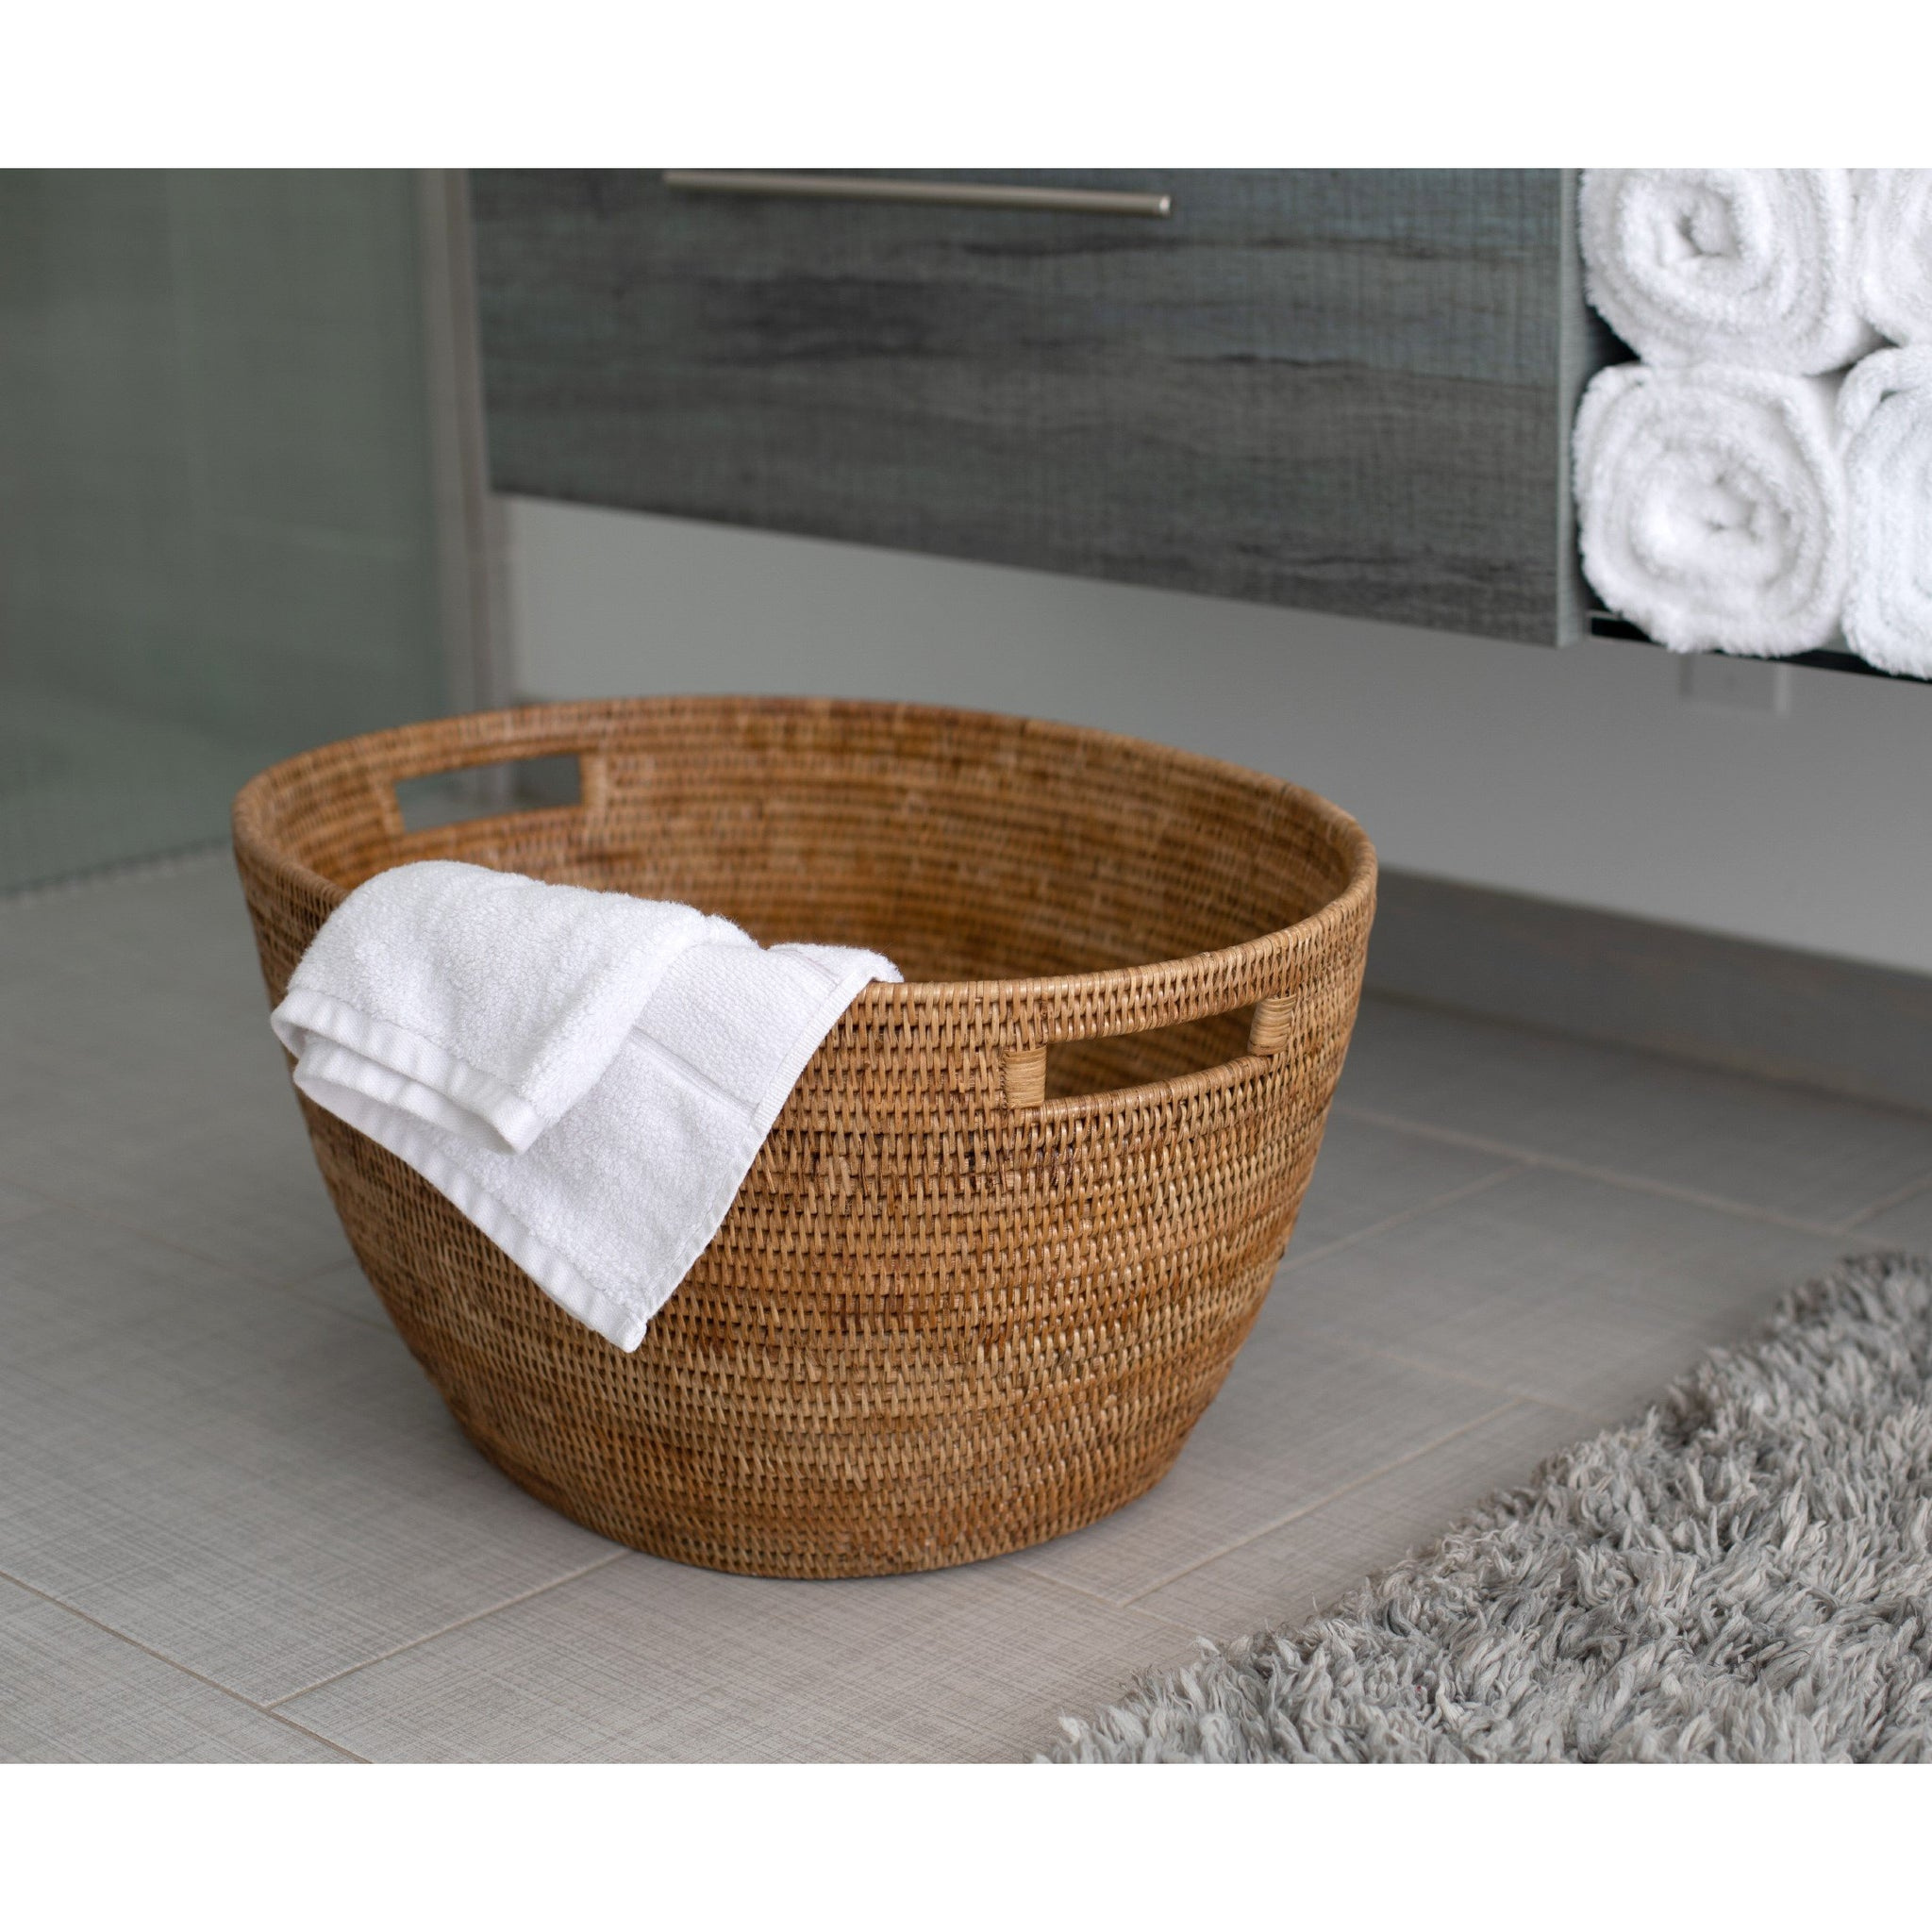 Laundry Basket with Cutout Handles Media 1 of 8